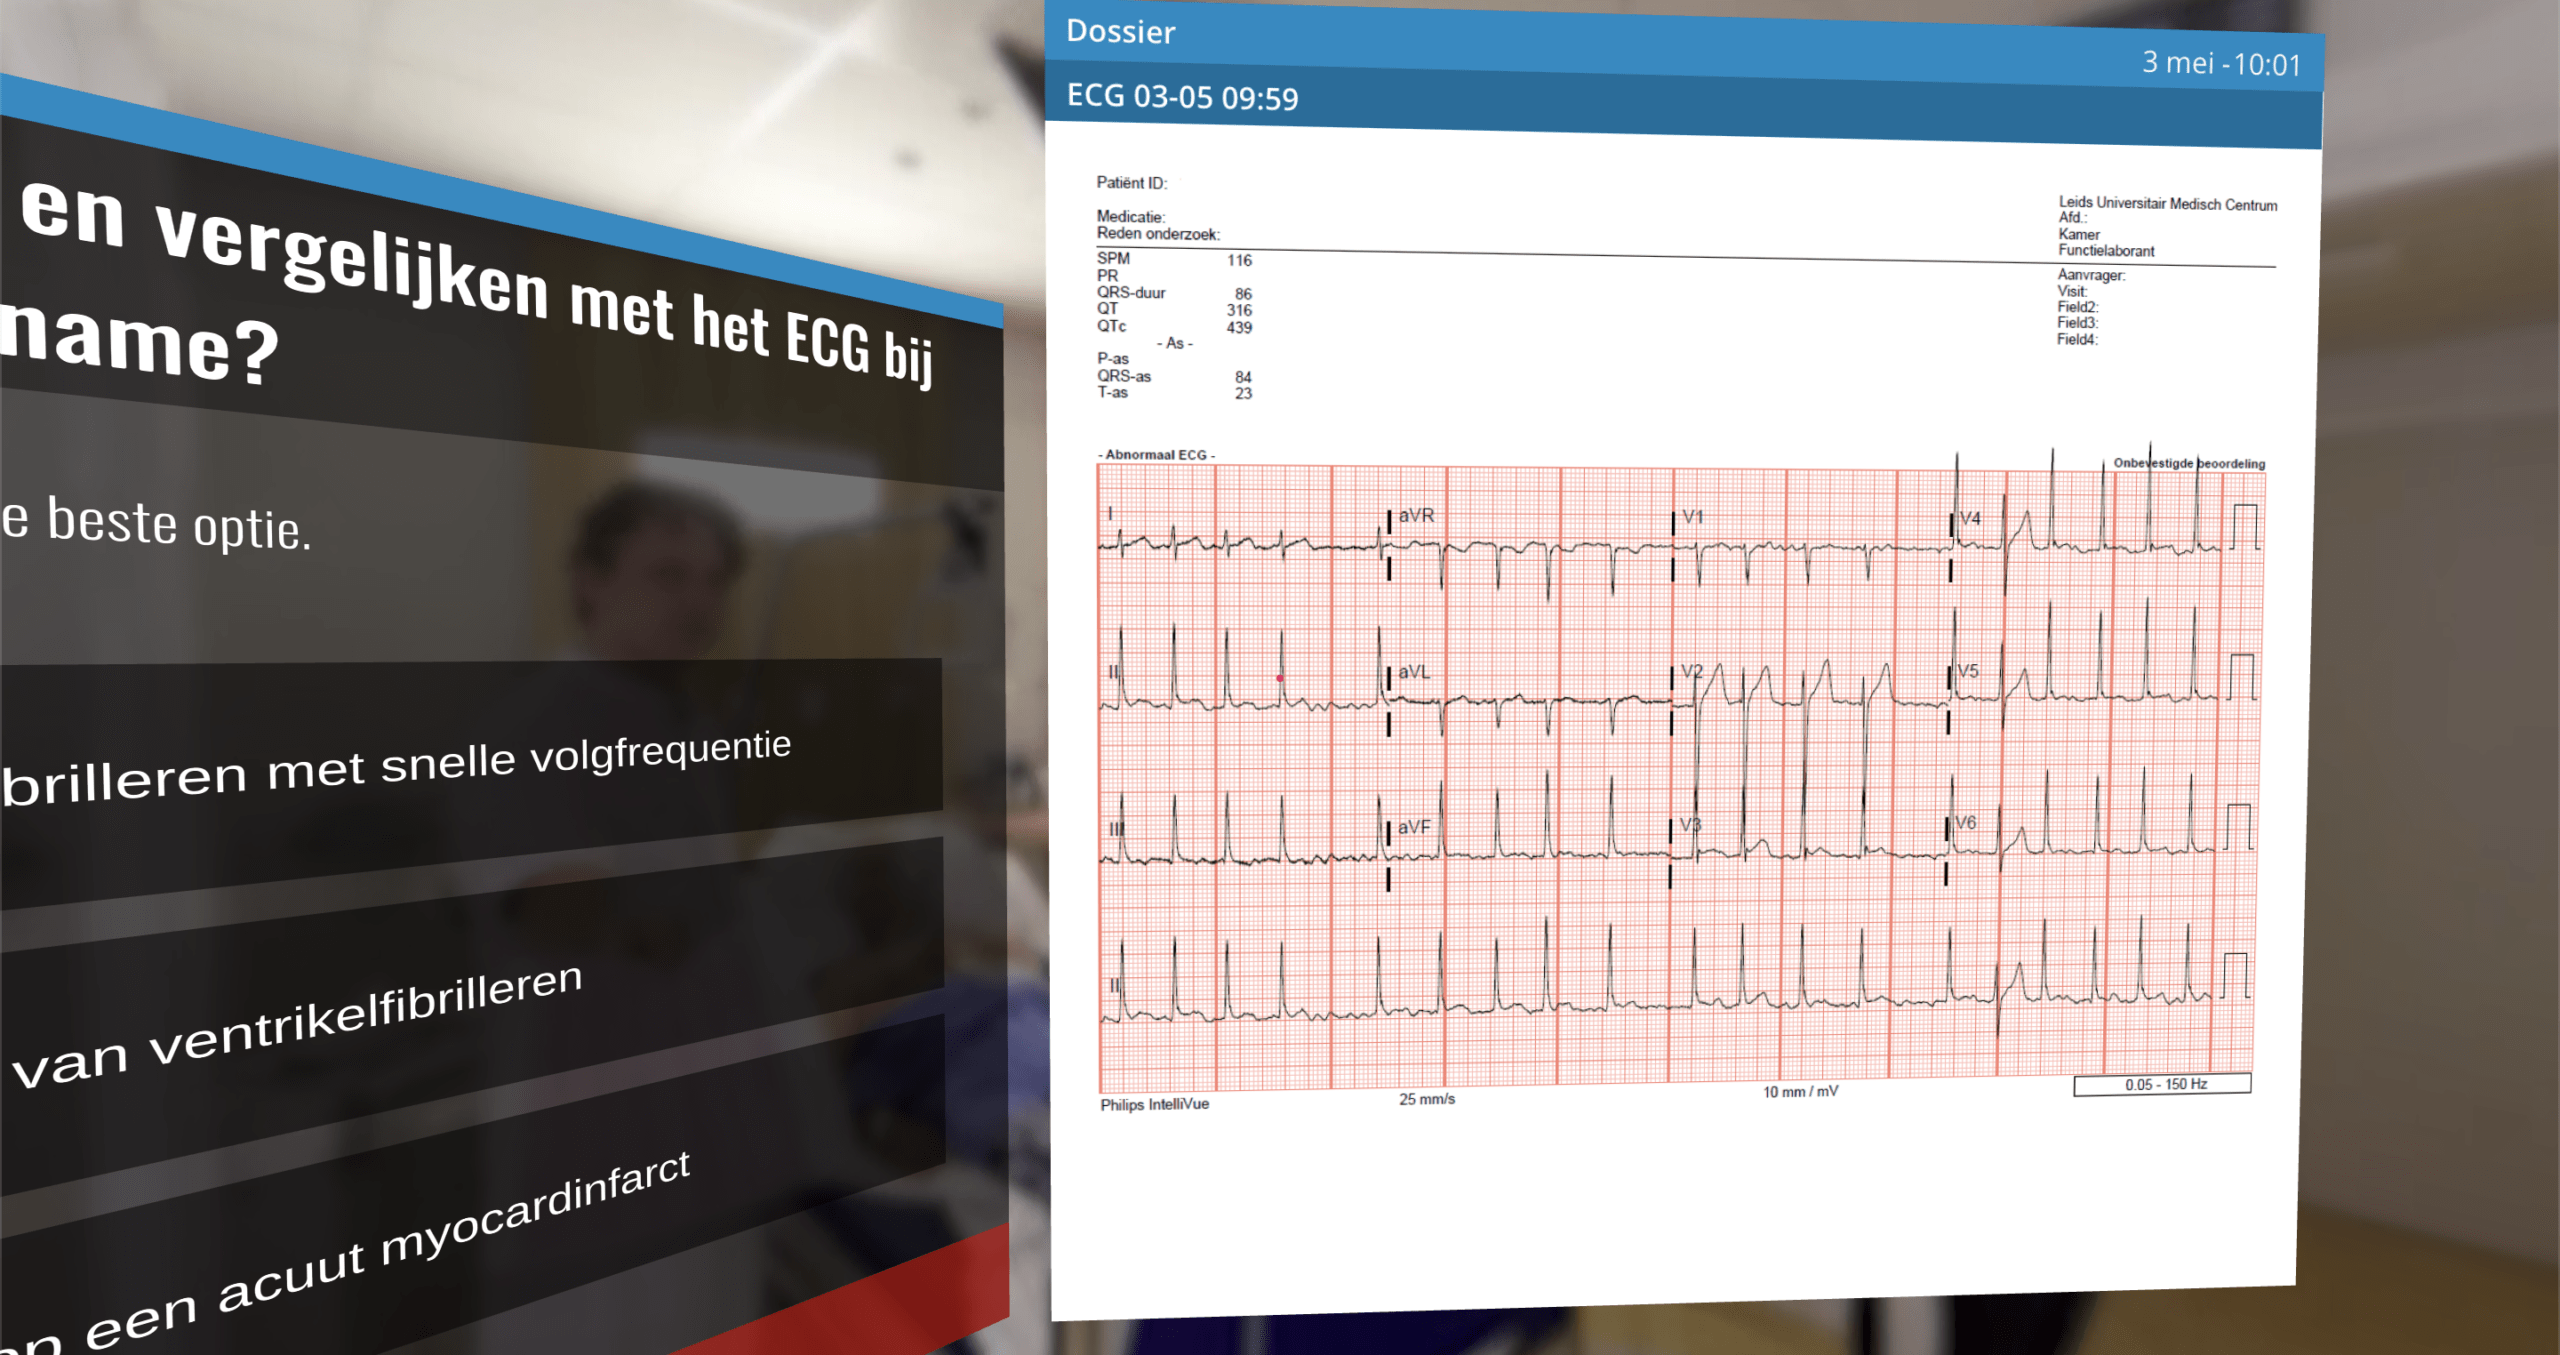 Users can choose to consult elements from the patient's Electronic Health Record, such as ECG's captured.